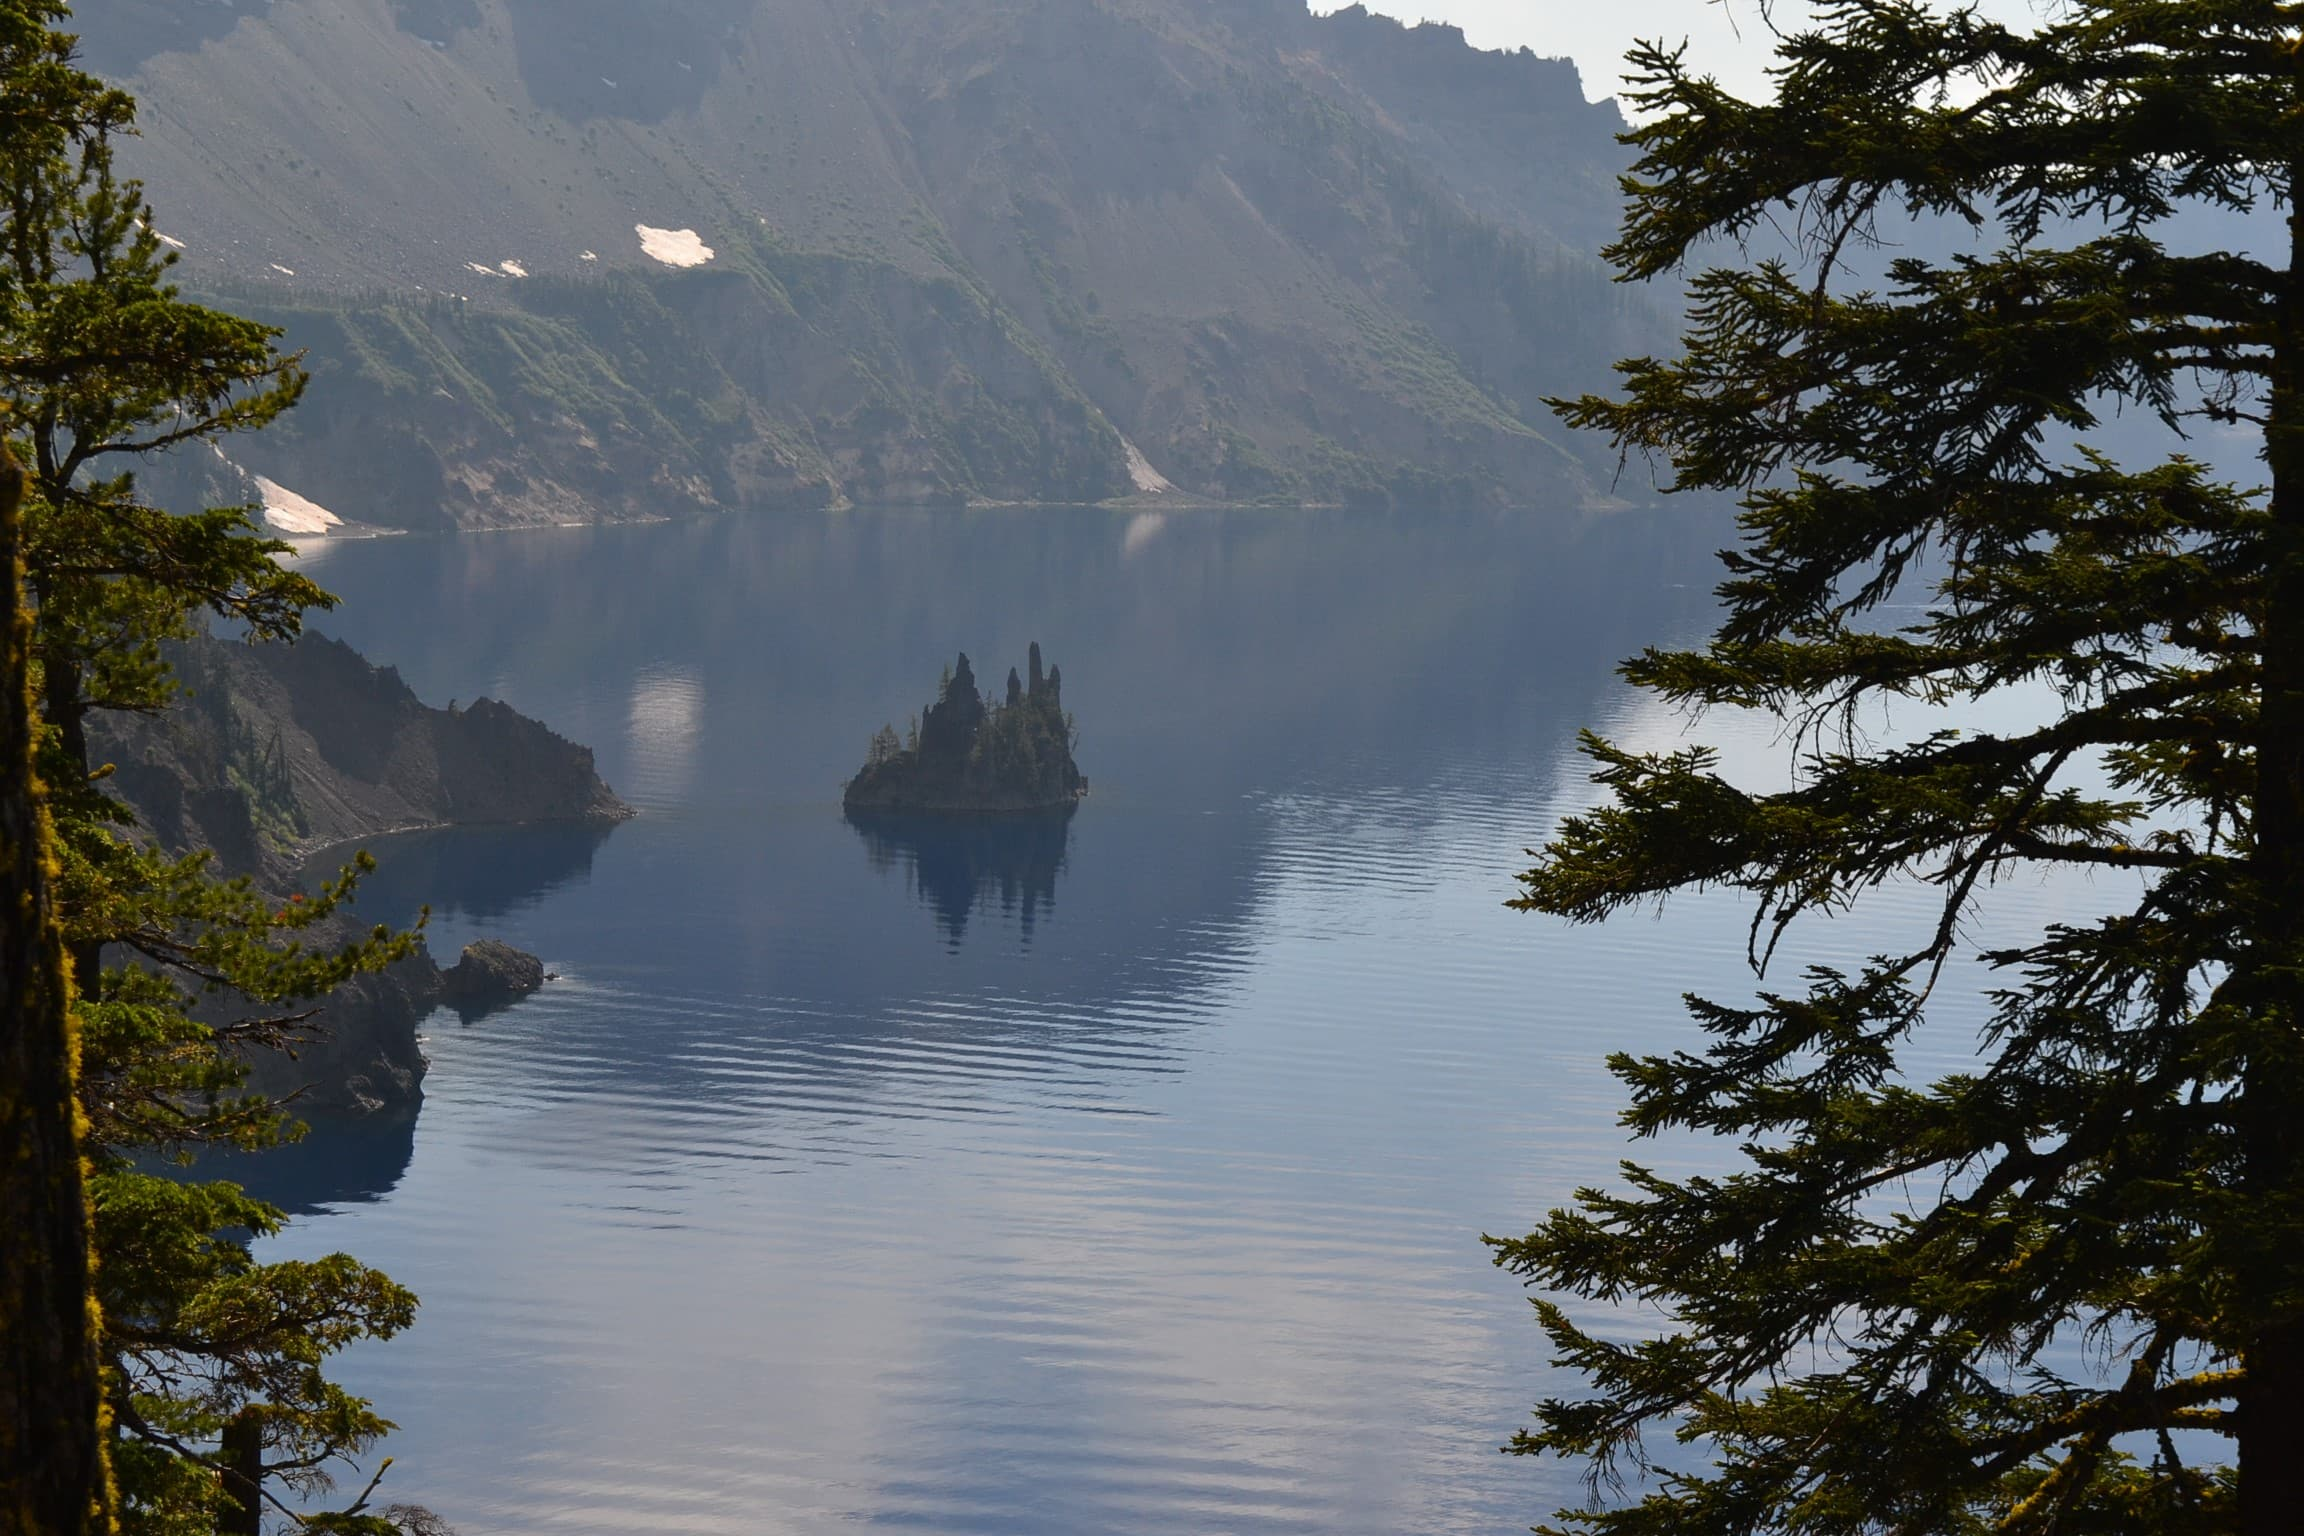 Tiny island in Crater Lake.